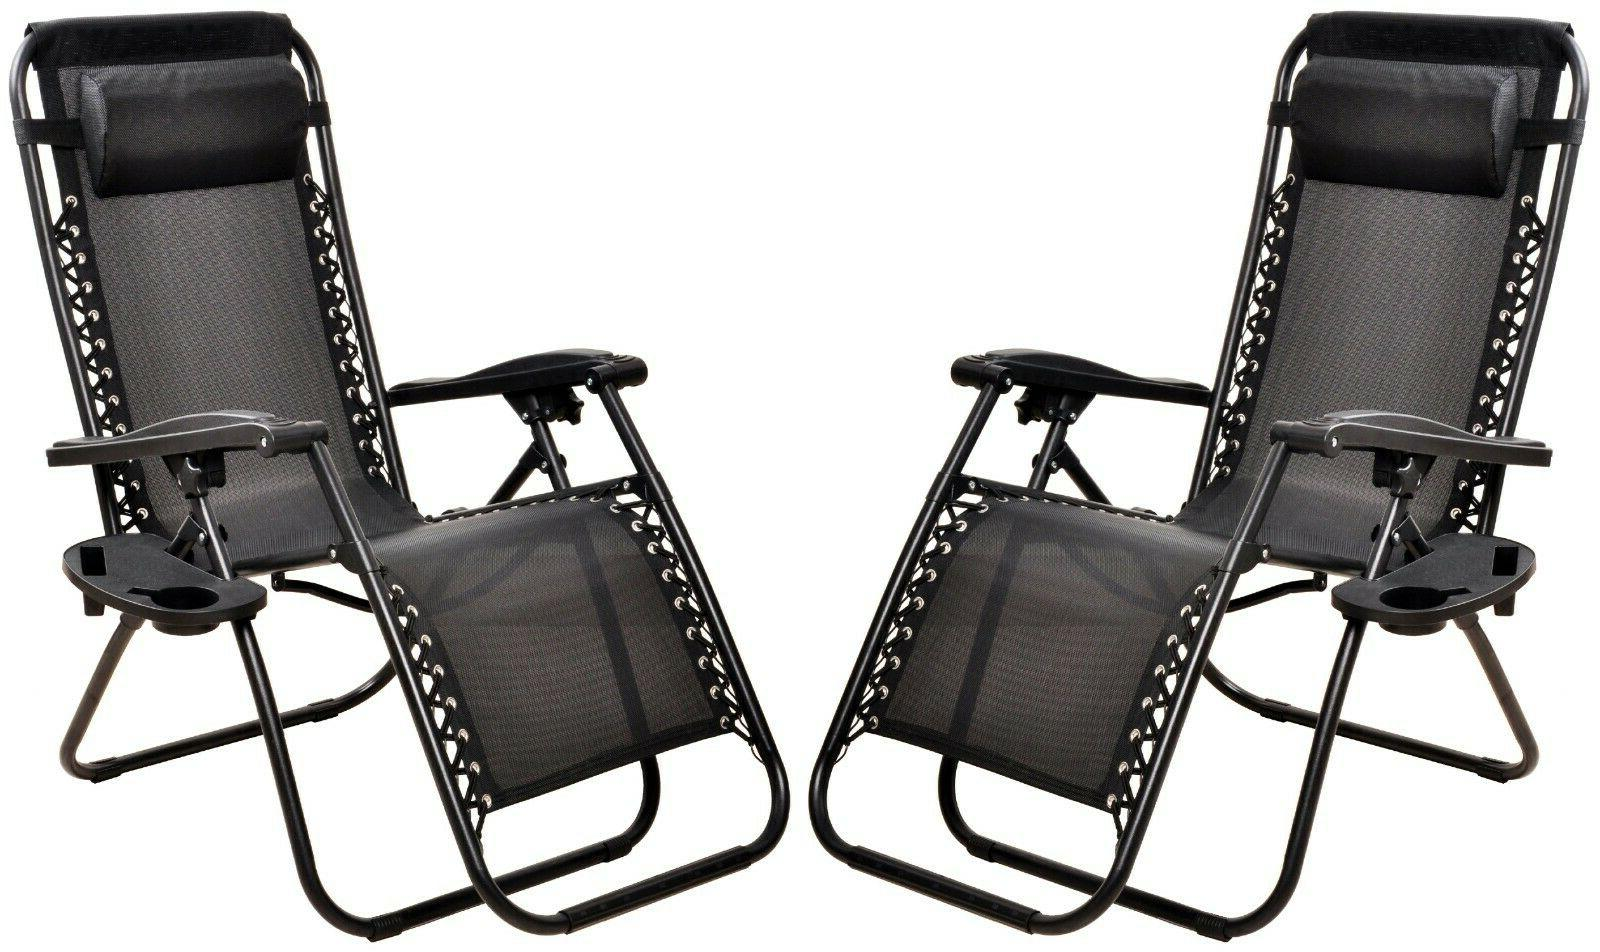 Case Of Zero Gravity Chairs Folding Outdoor Patio Reclinable